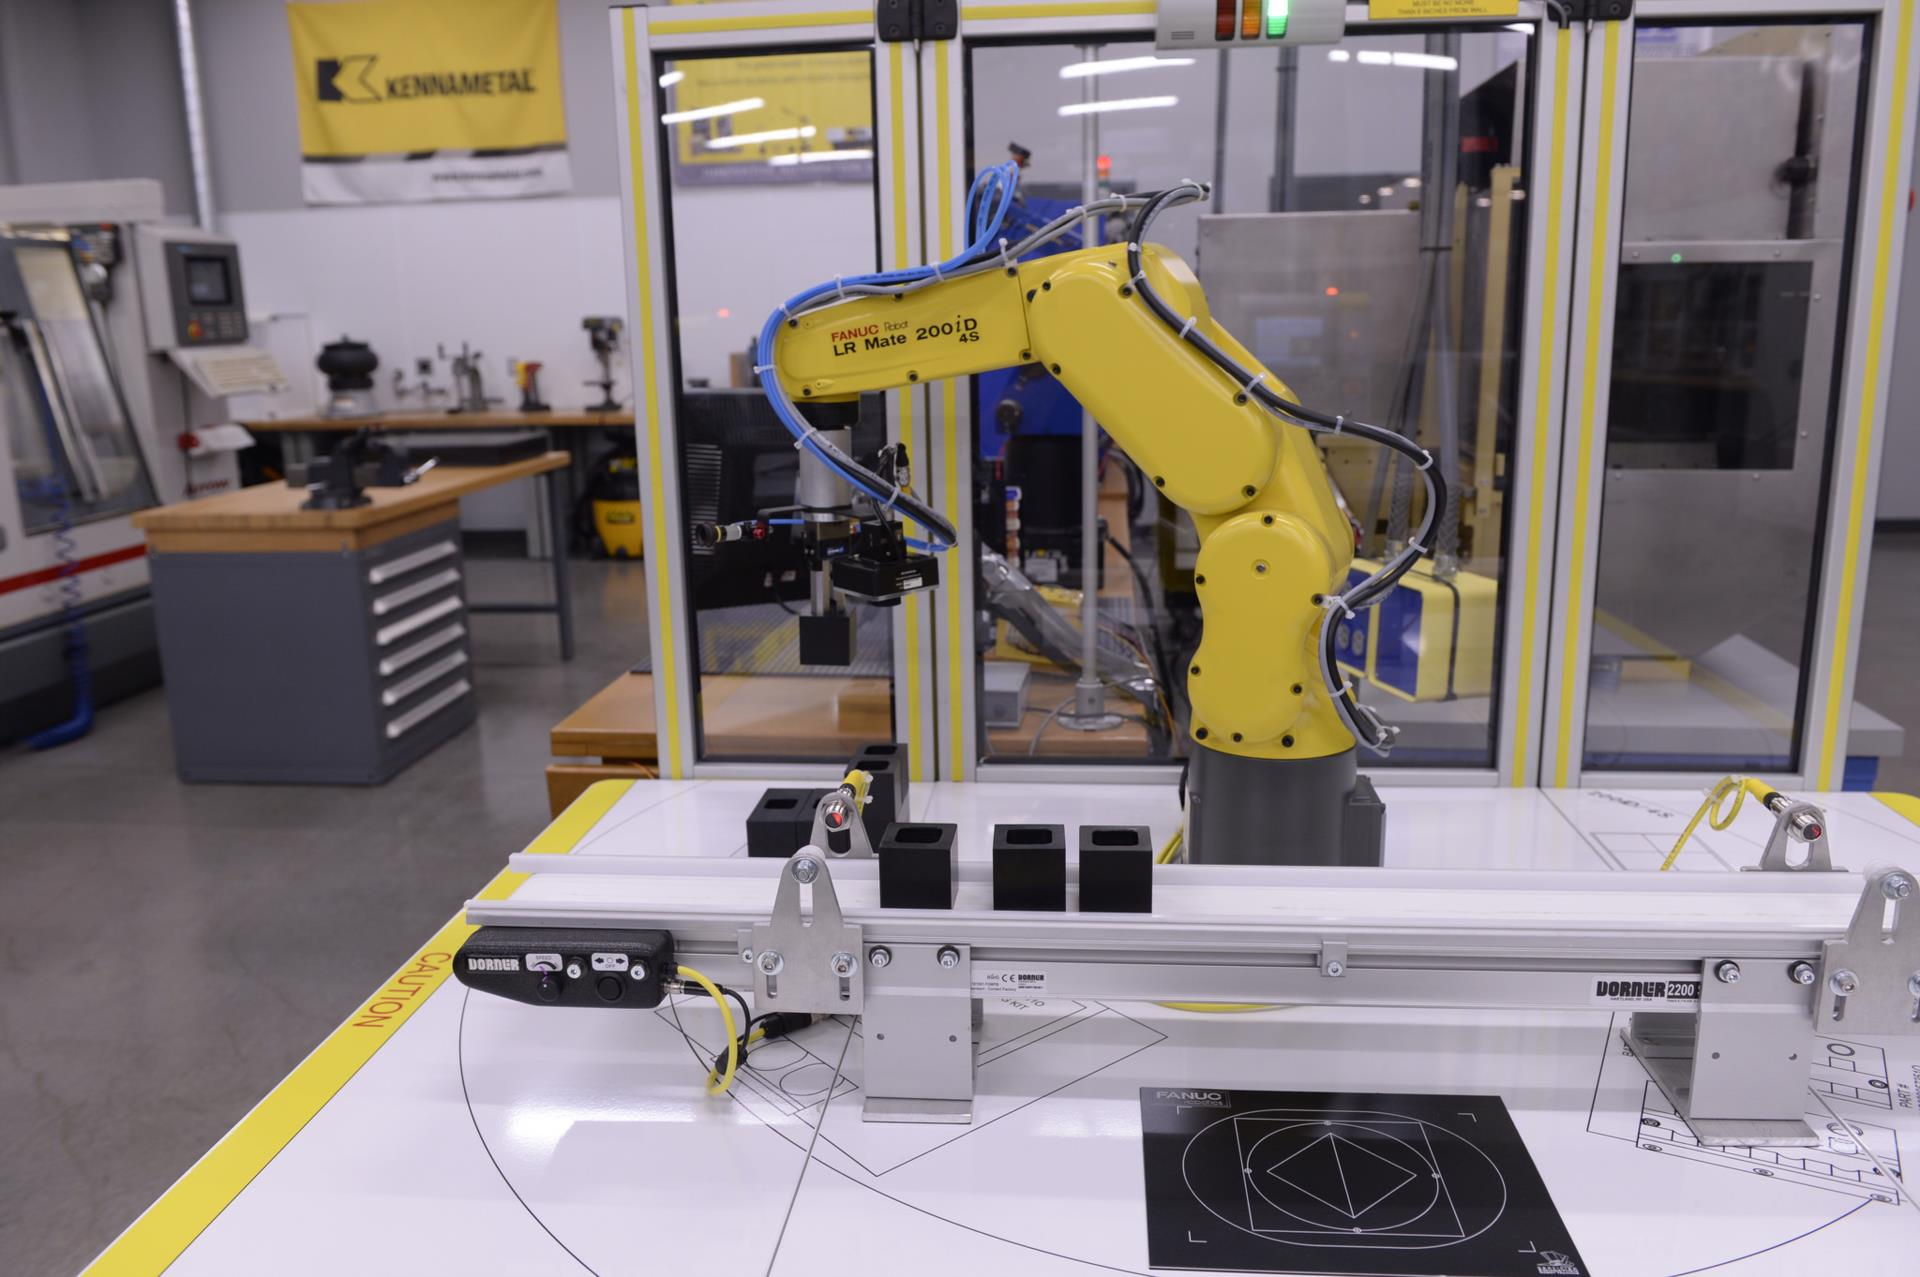 A picture of a robotic arm